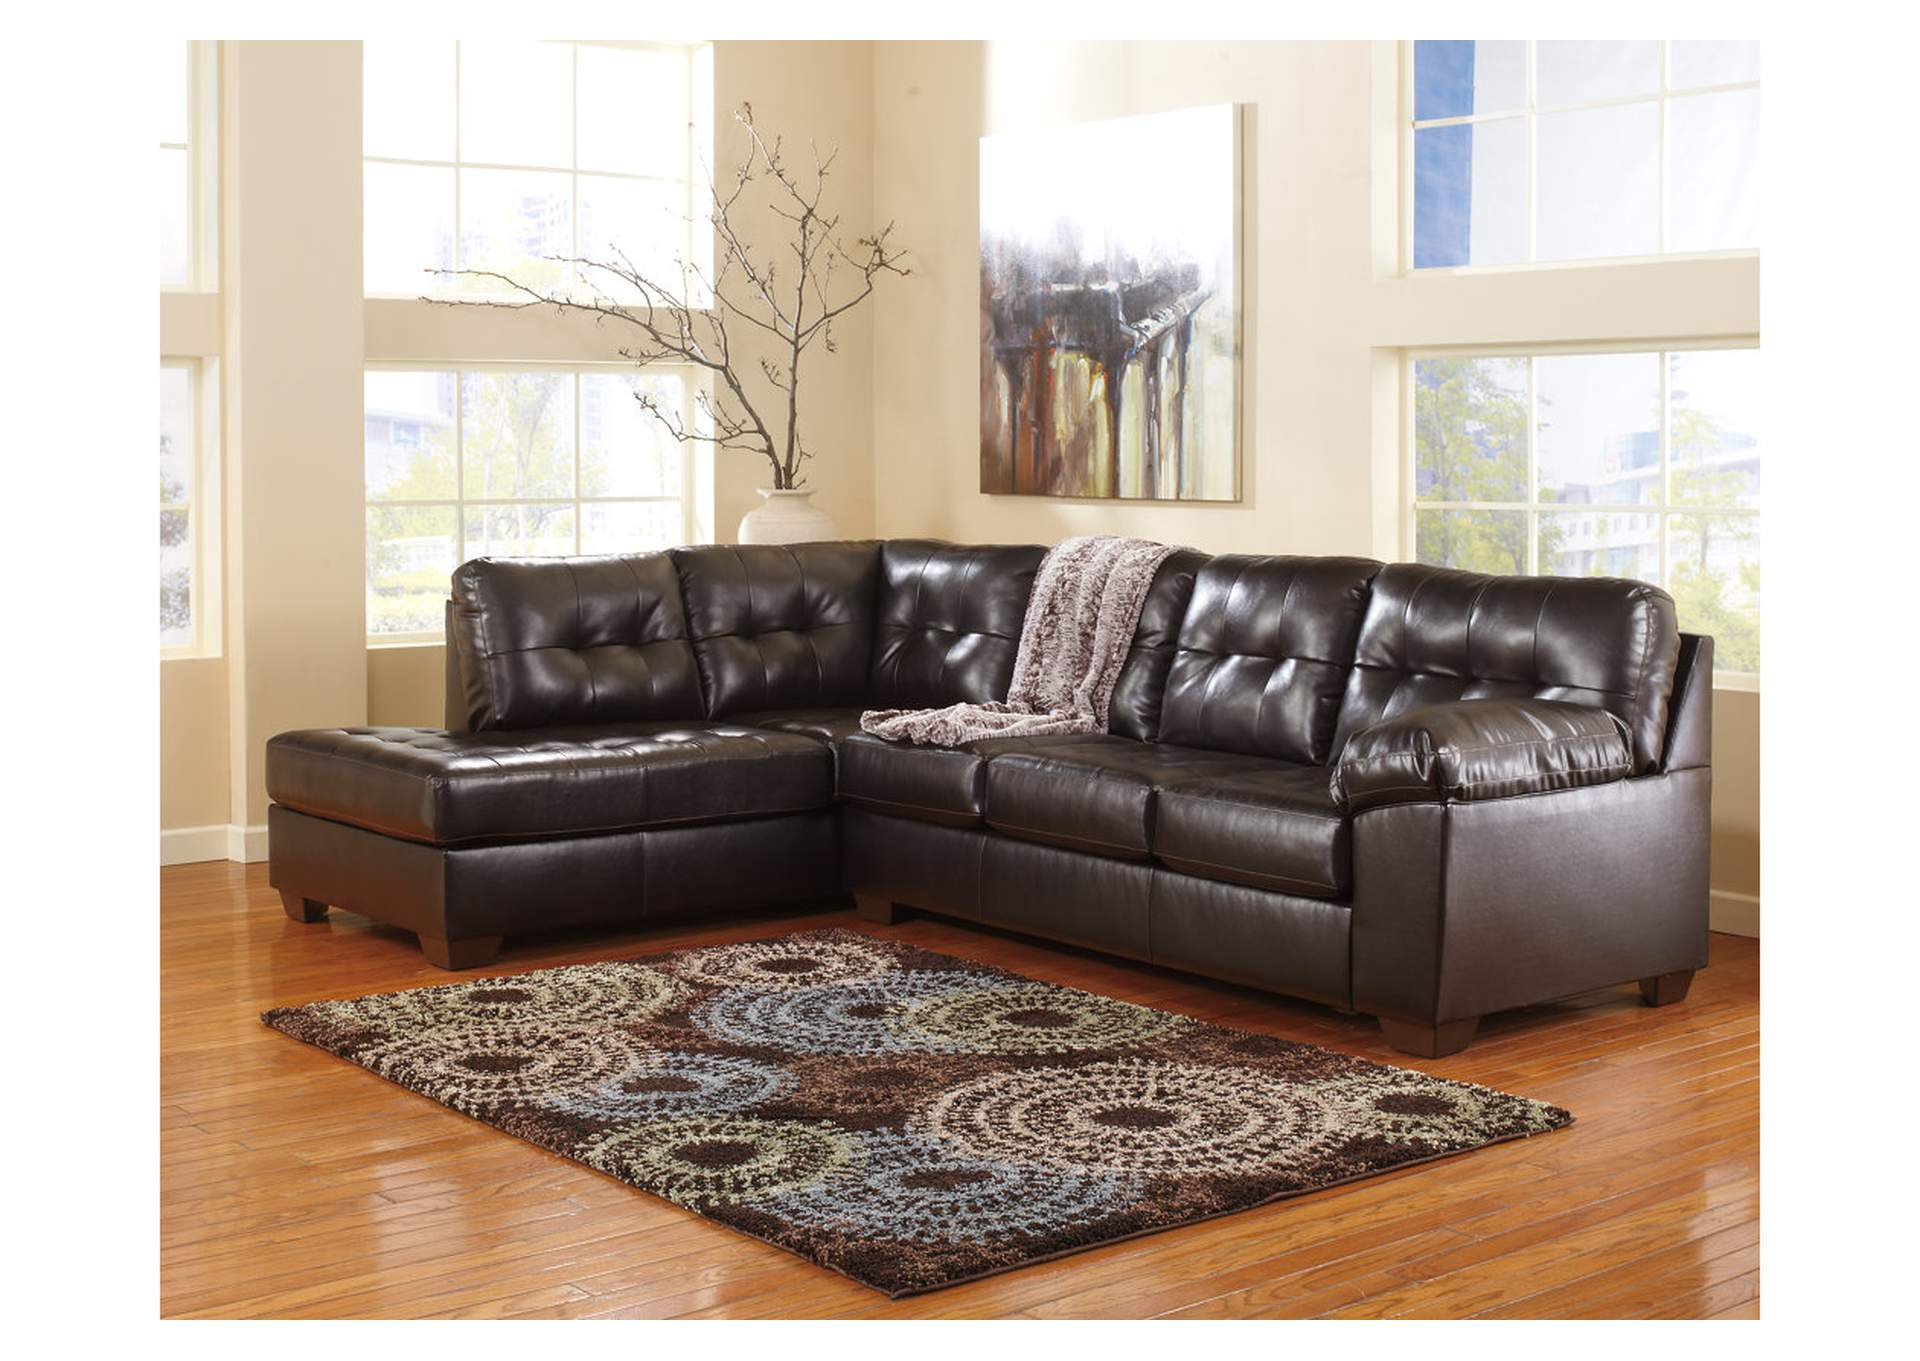 Alliston DuraBlend Chocolate LAF Chaise End Sectional,Signature Design By Ashley